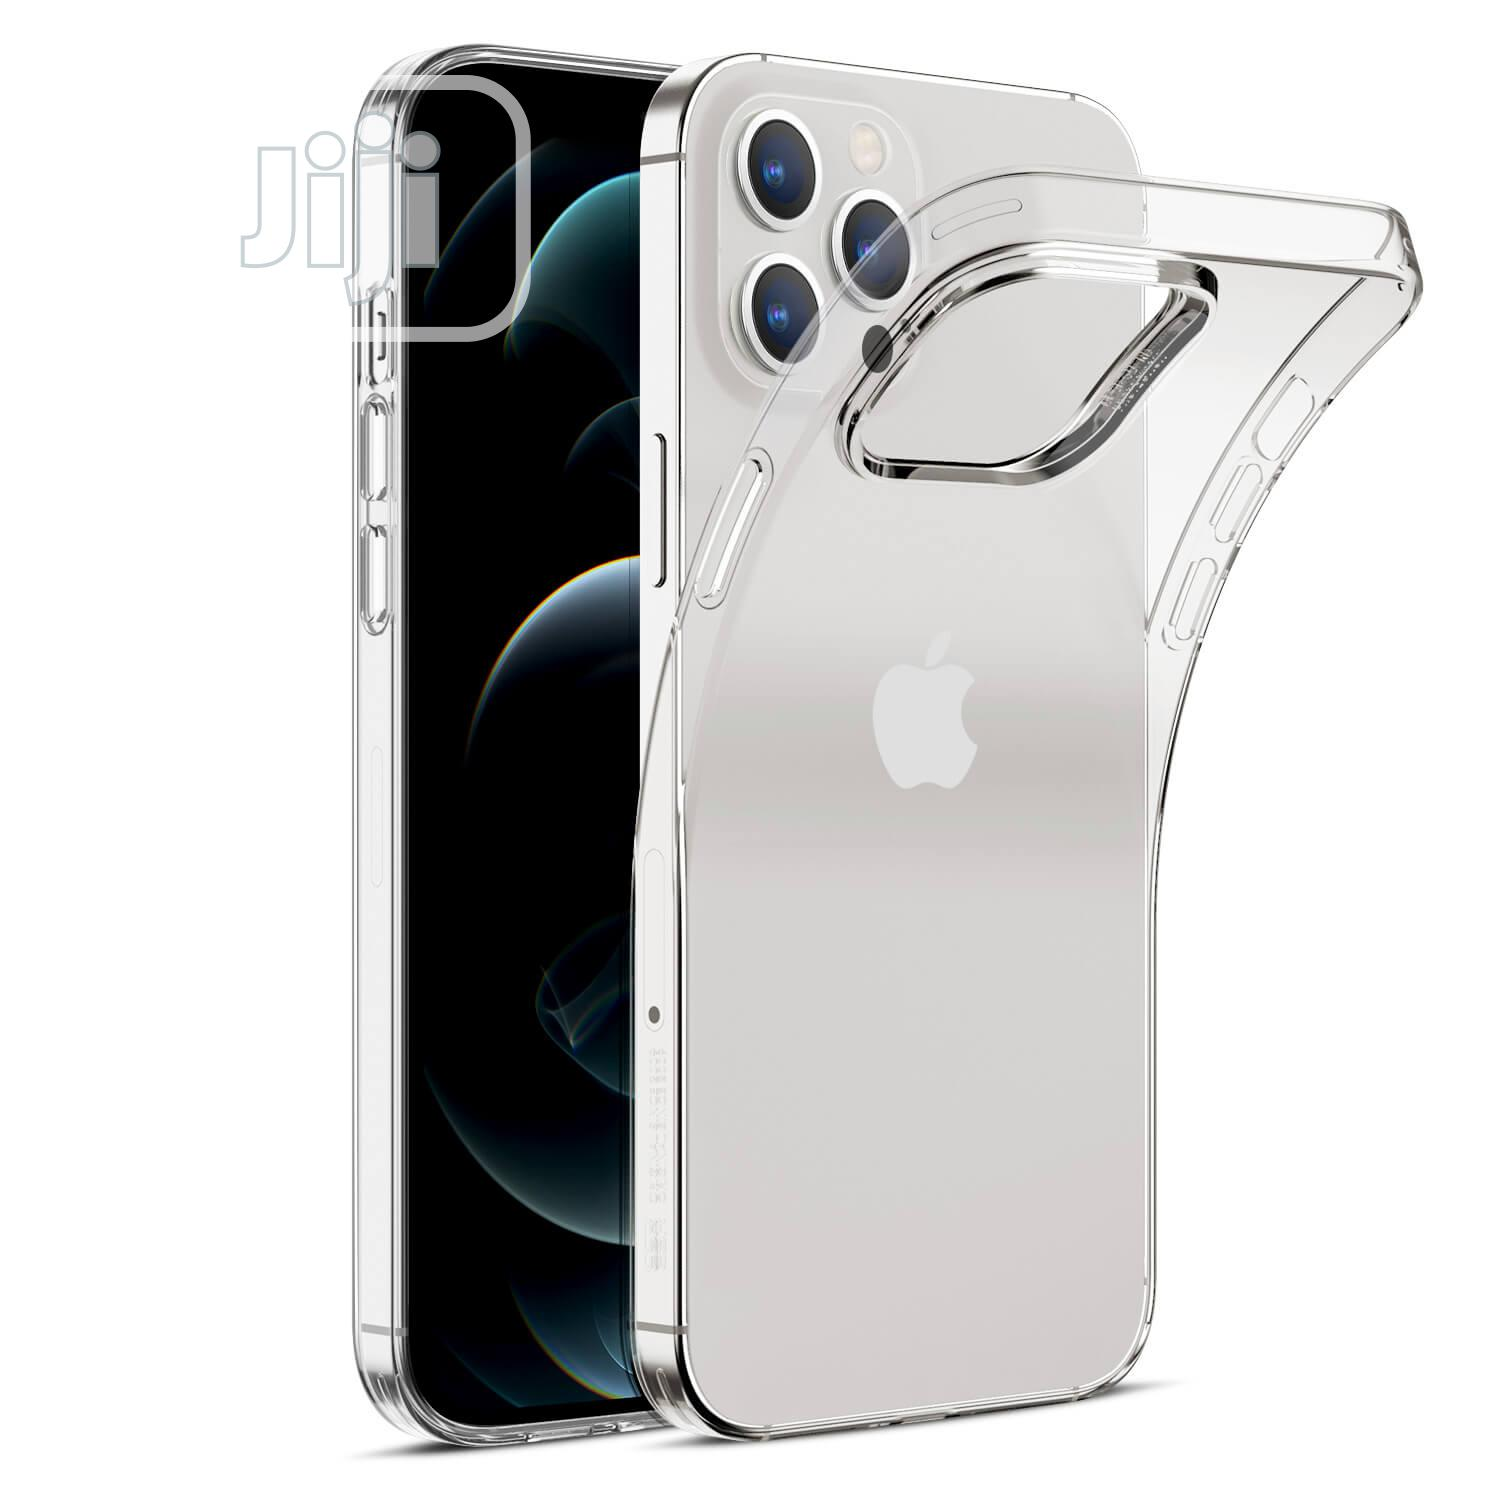 Clear Case For iPhone 12 Pro Max   Accessories for Mobile Phones & Tablets for sale in Ikeja, Lagos State, Nigeria